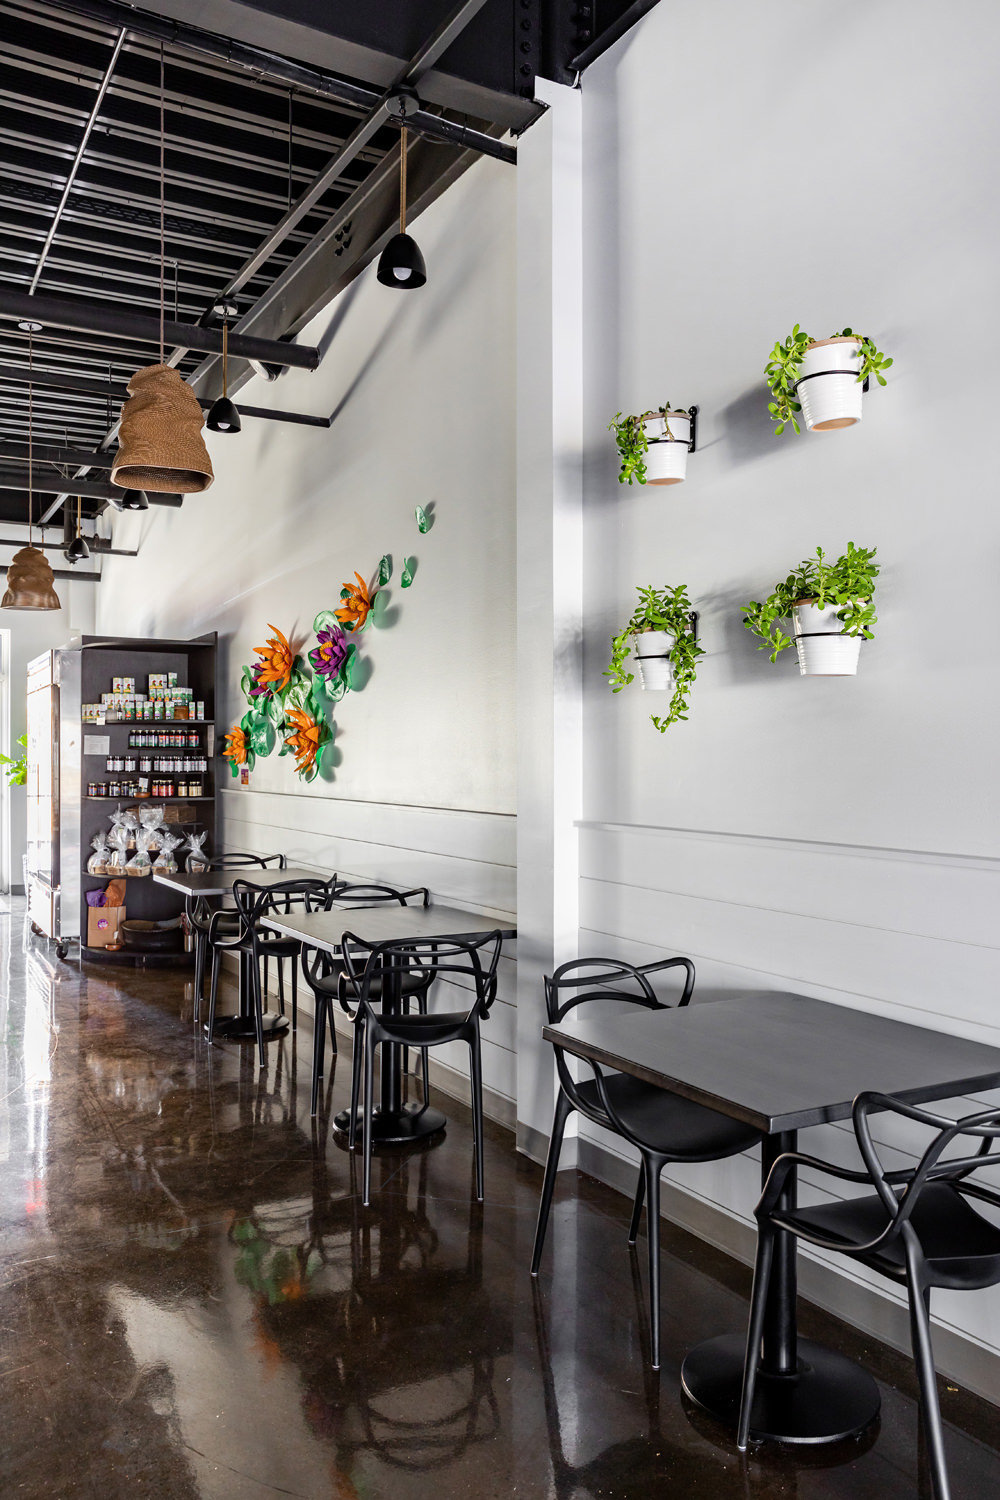 Dominique-DeLaney-Lotus-Soul-Juice-Bar-Wellness-Cafe-Design-8